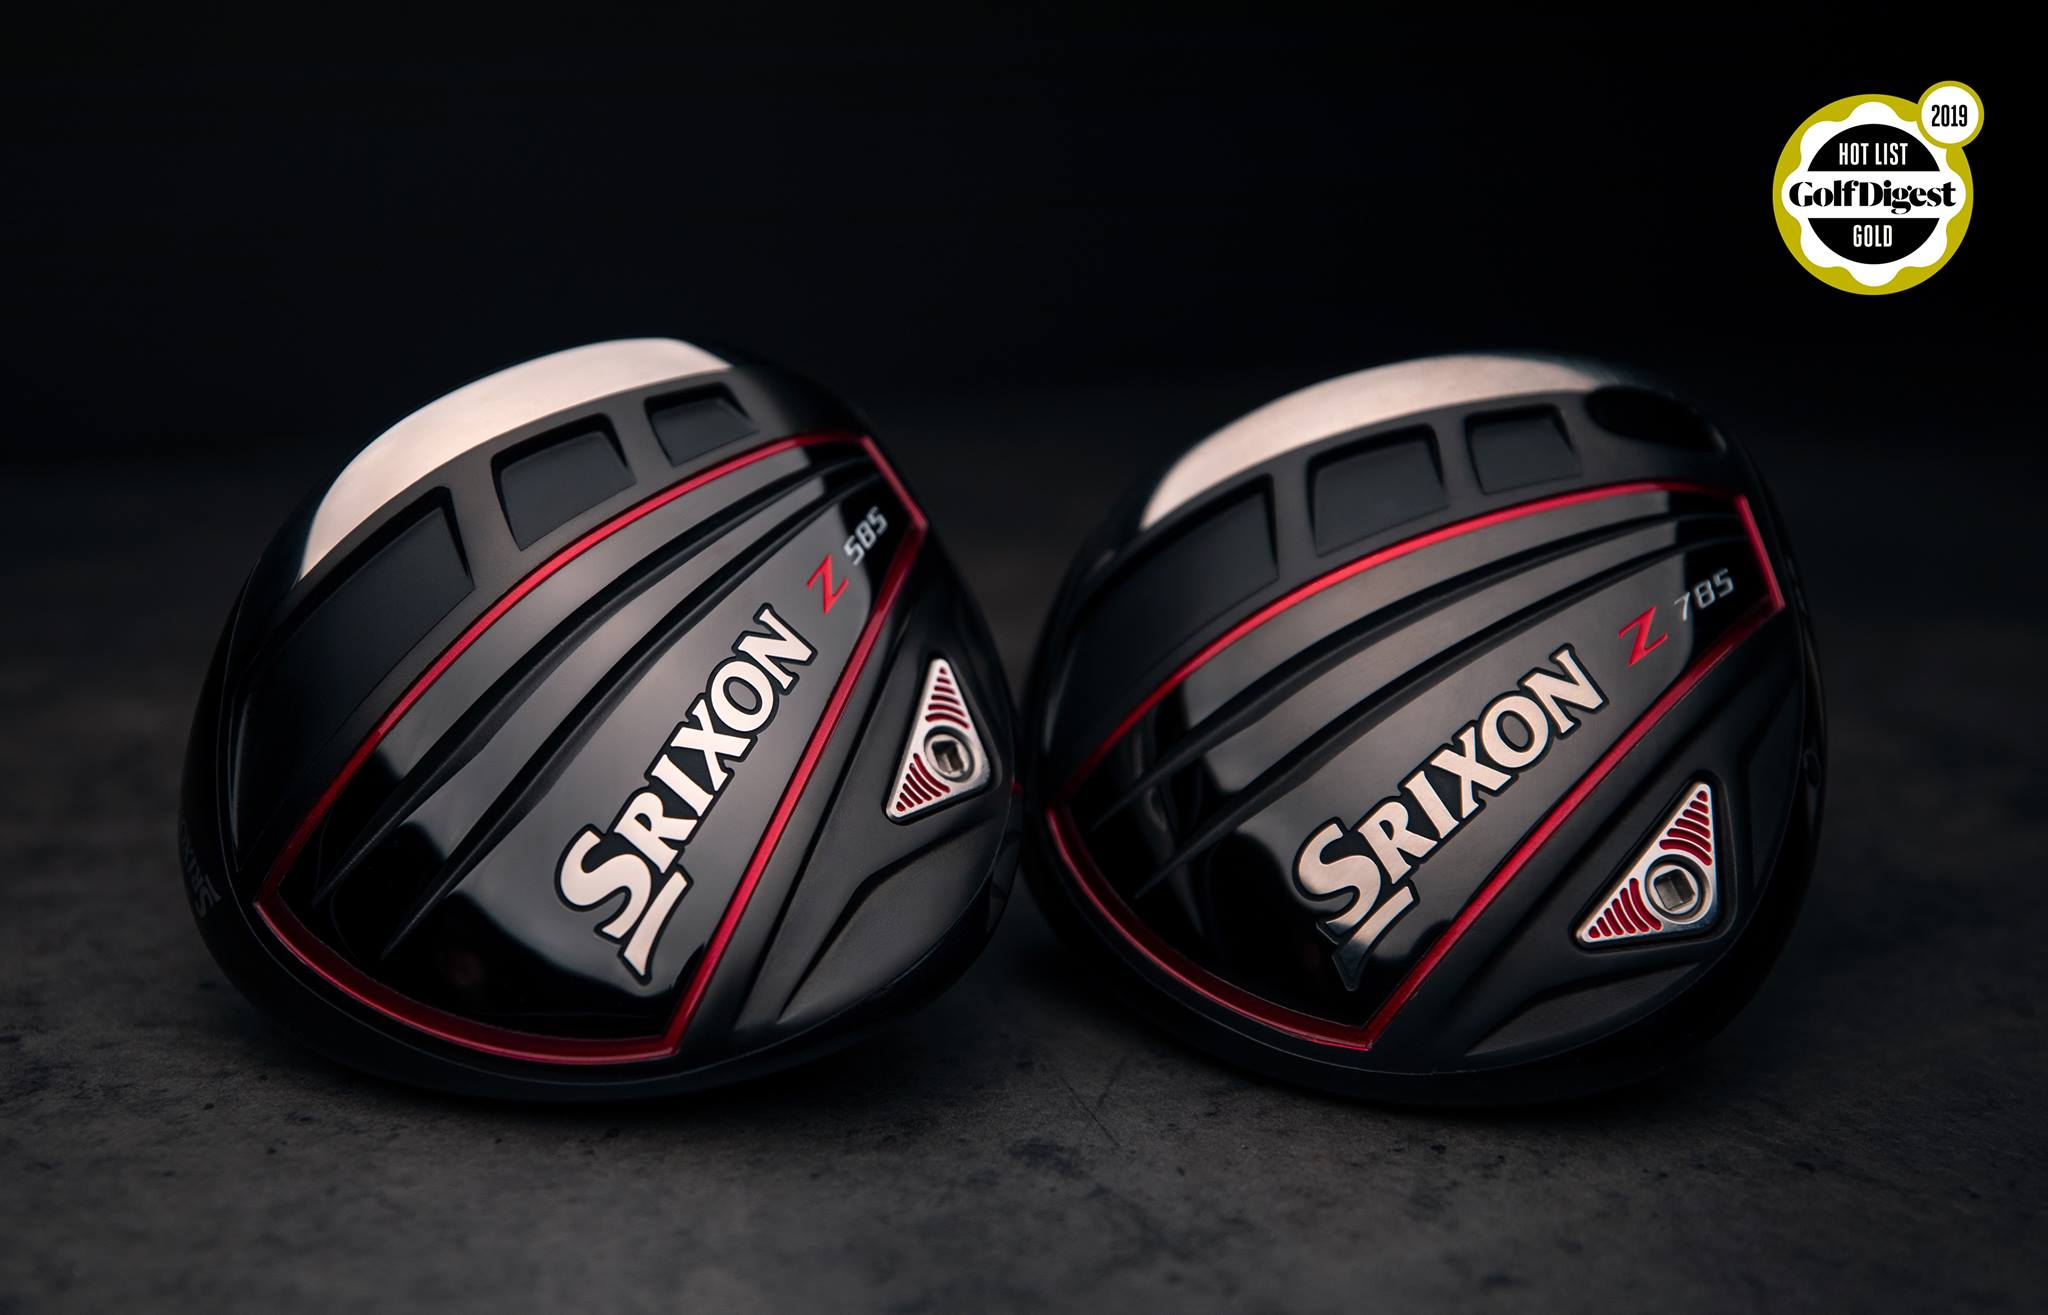 Srixon Golf Ball Fitting at Birkdale Golf Club - September